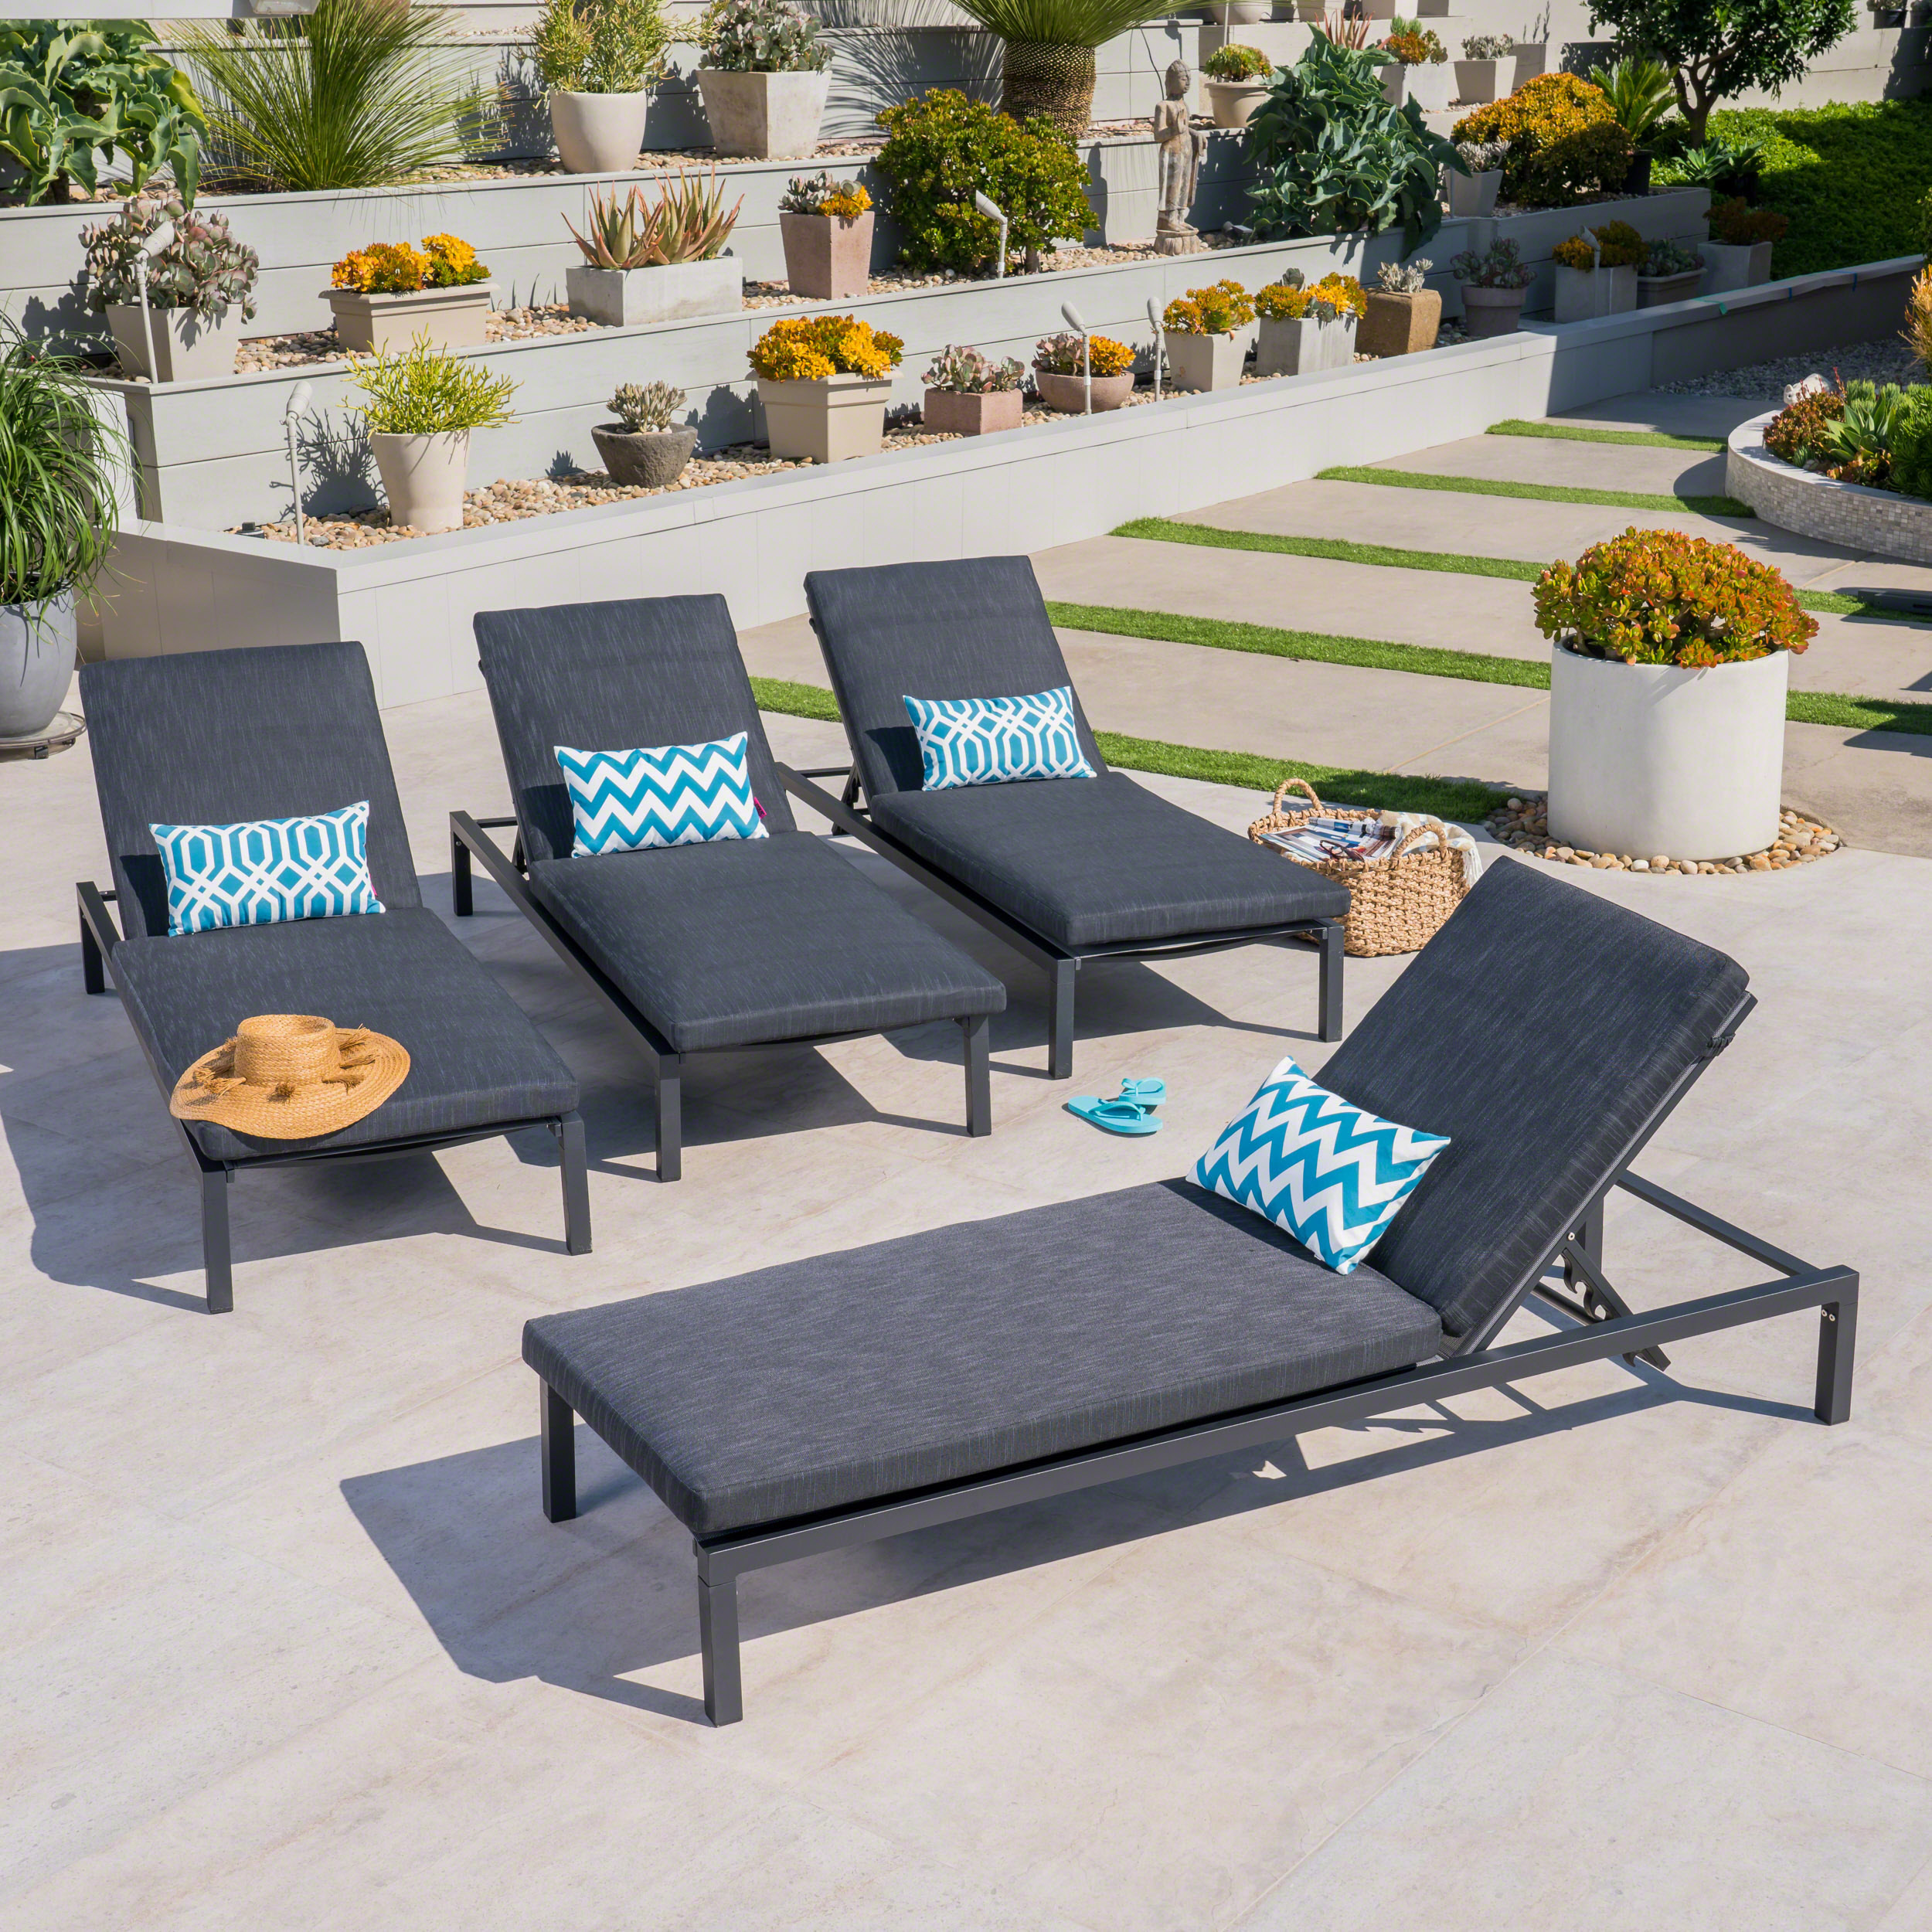 Bristol Outdoor Adjustable Aluminum Chaise Lounges with Cushion, Set of 4, Black, Dark Grey